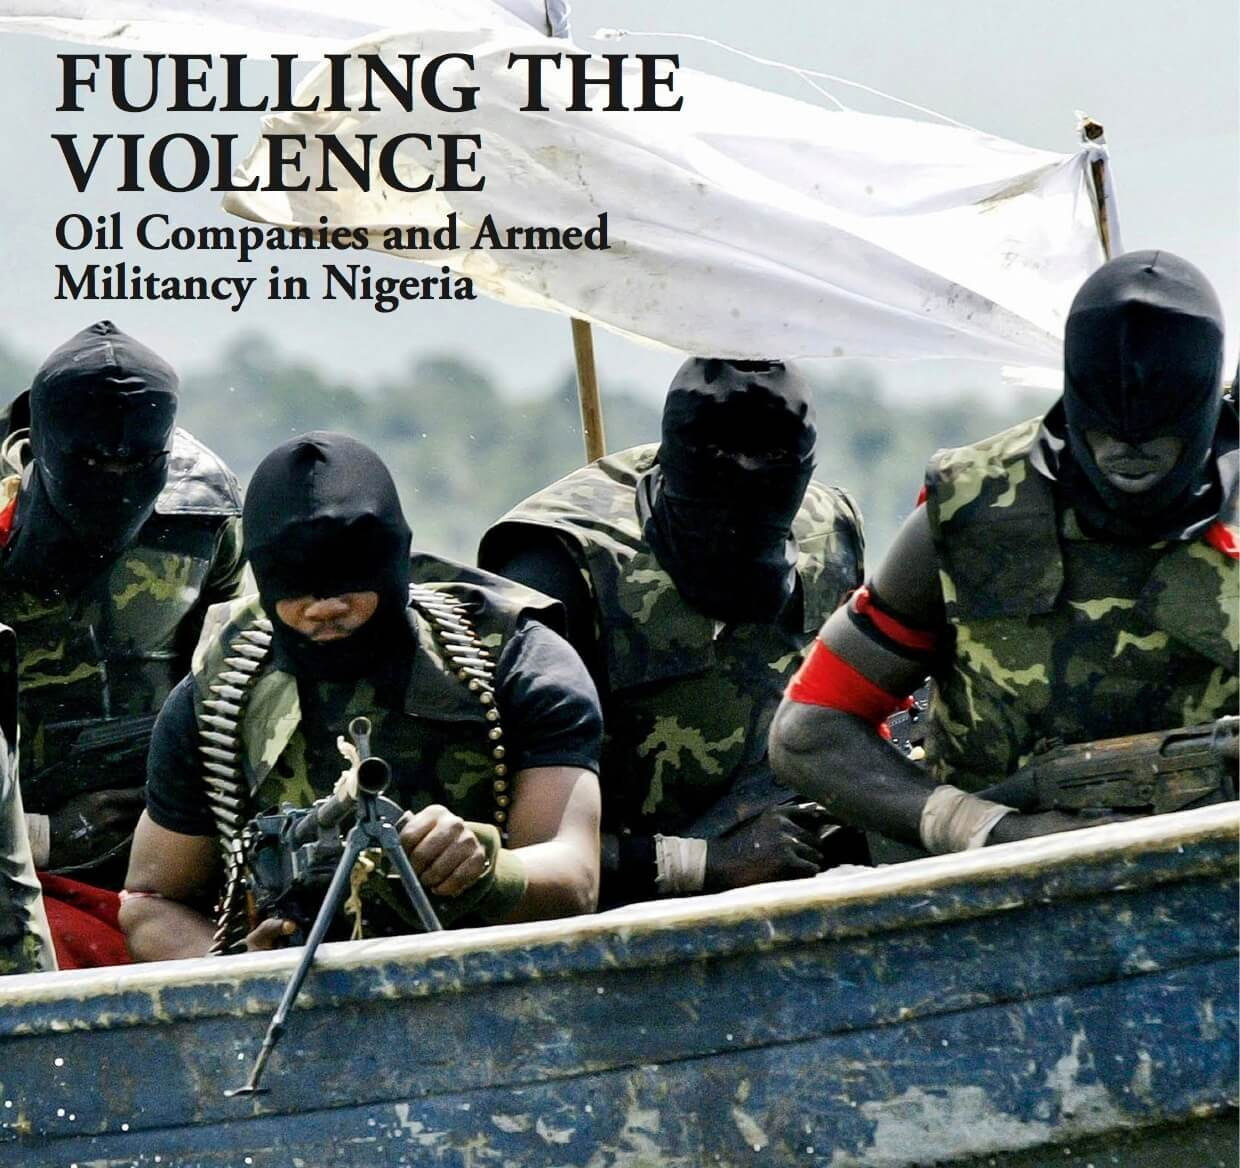 Oil companies gave cash and contracts to militants and warlords in Nigeria